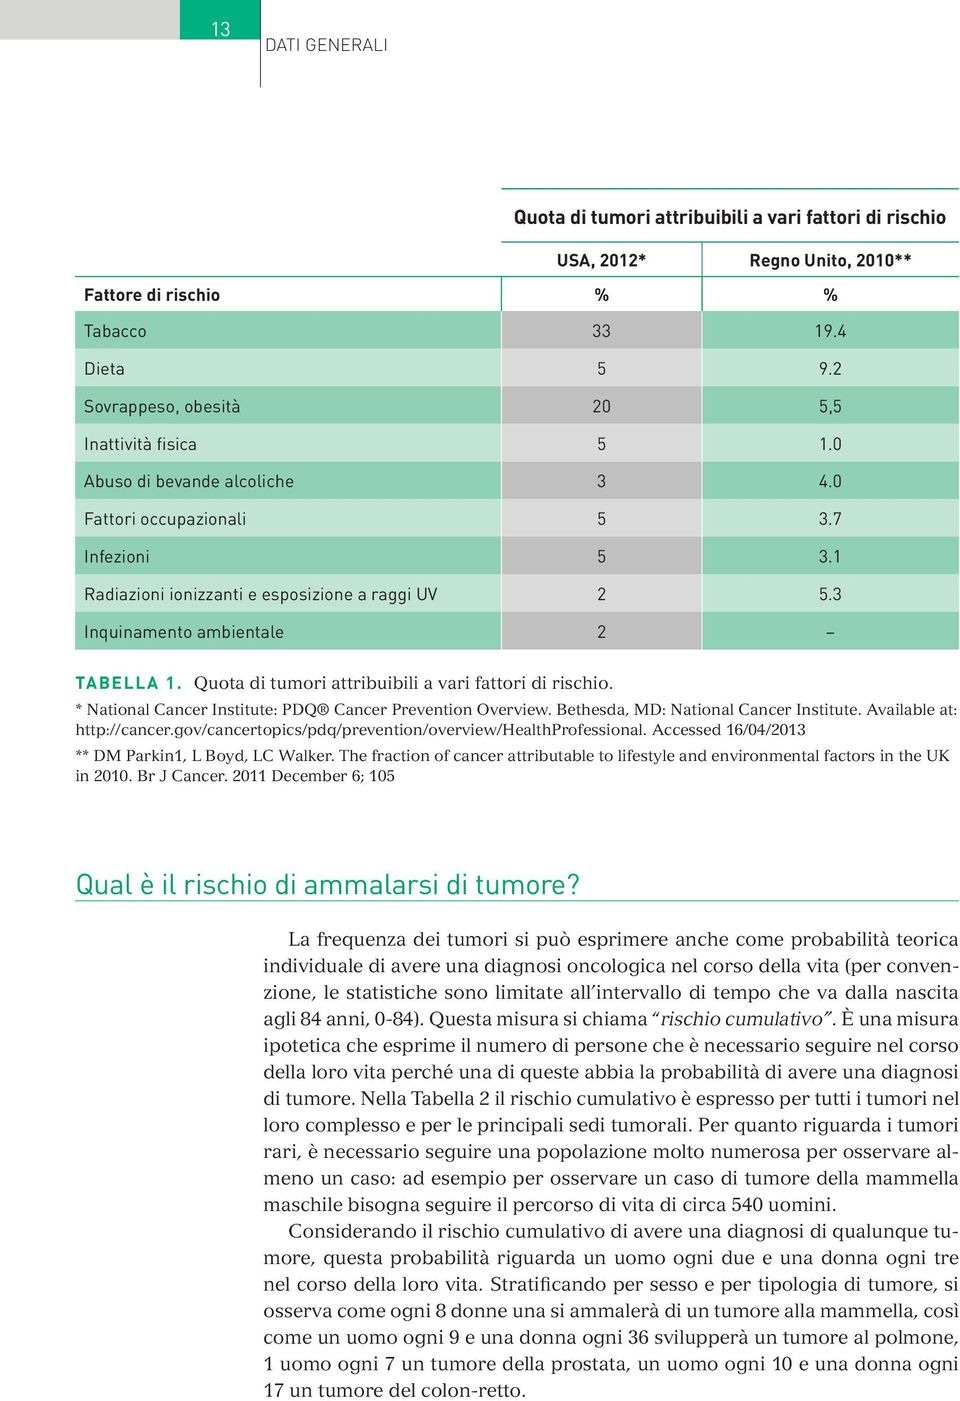 3 inquinamento ambientale 2 TAbEllA 1. Quota di tumori attribuibili a vari fattori di rischio. * National Cancer Institute: PDQ Cancer Prevention Overview. Bethesda, MD: National Cancer Institute.